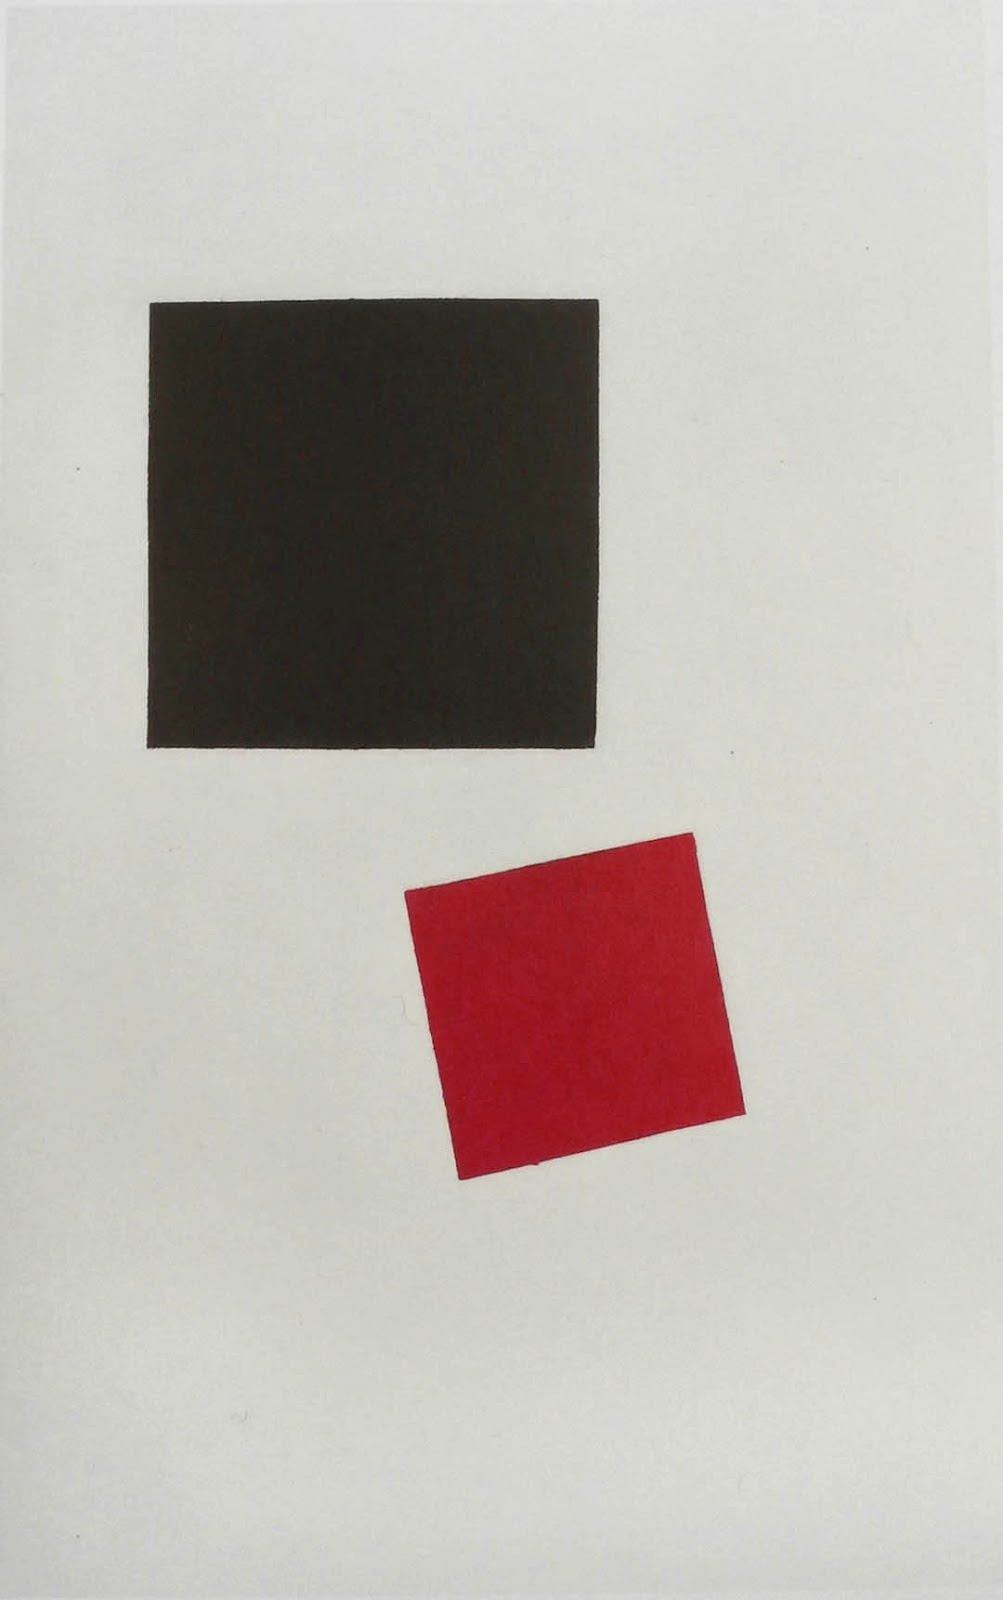 Painterly Realism of a Boy with a Knapsack Color Masses in the Fourth Dimension by Kazimir Malevich